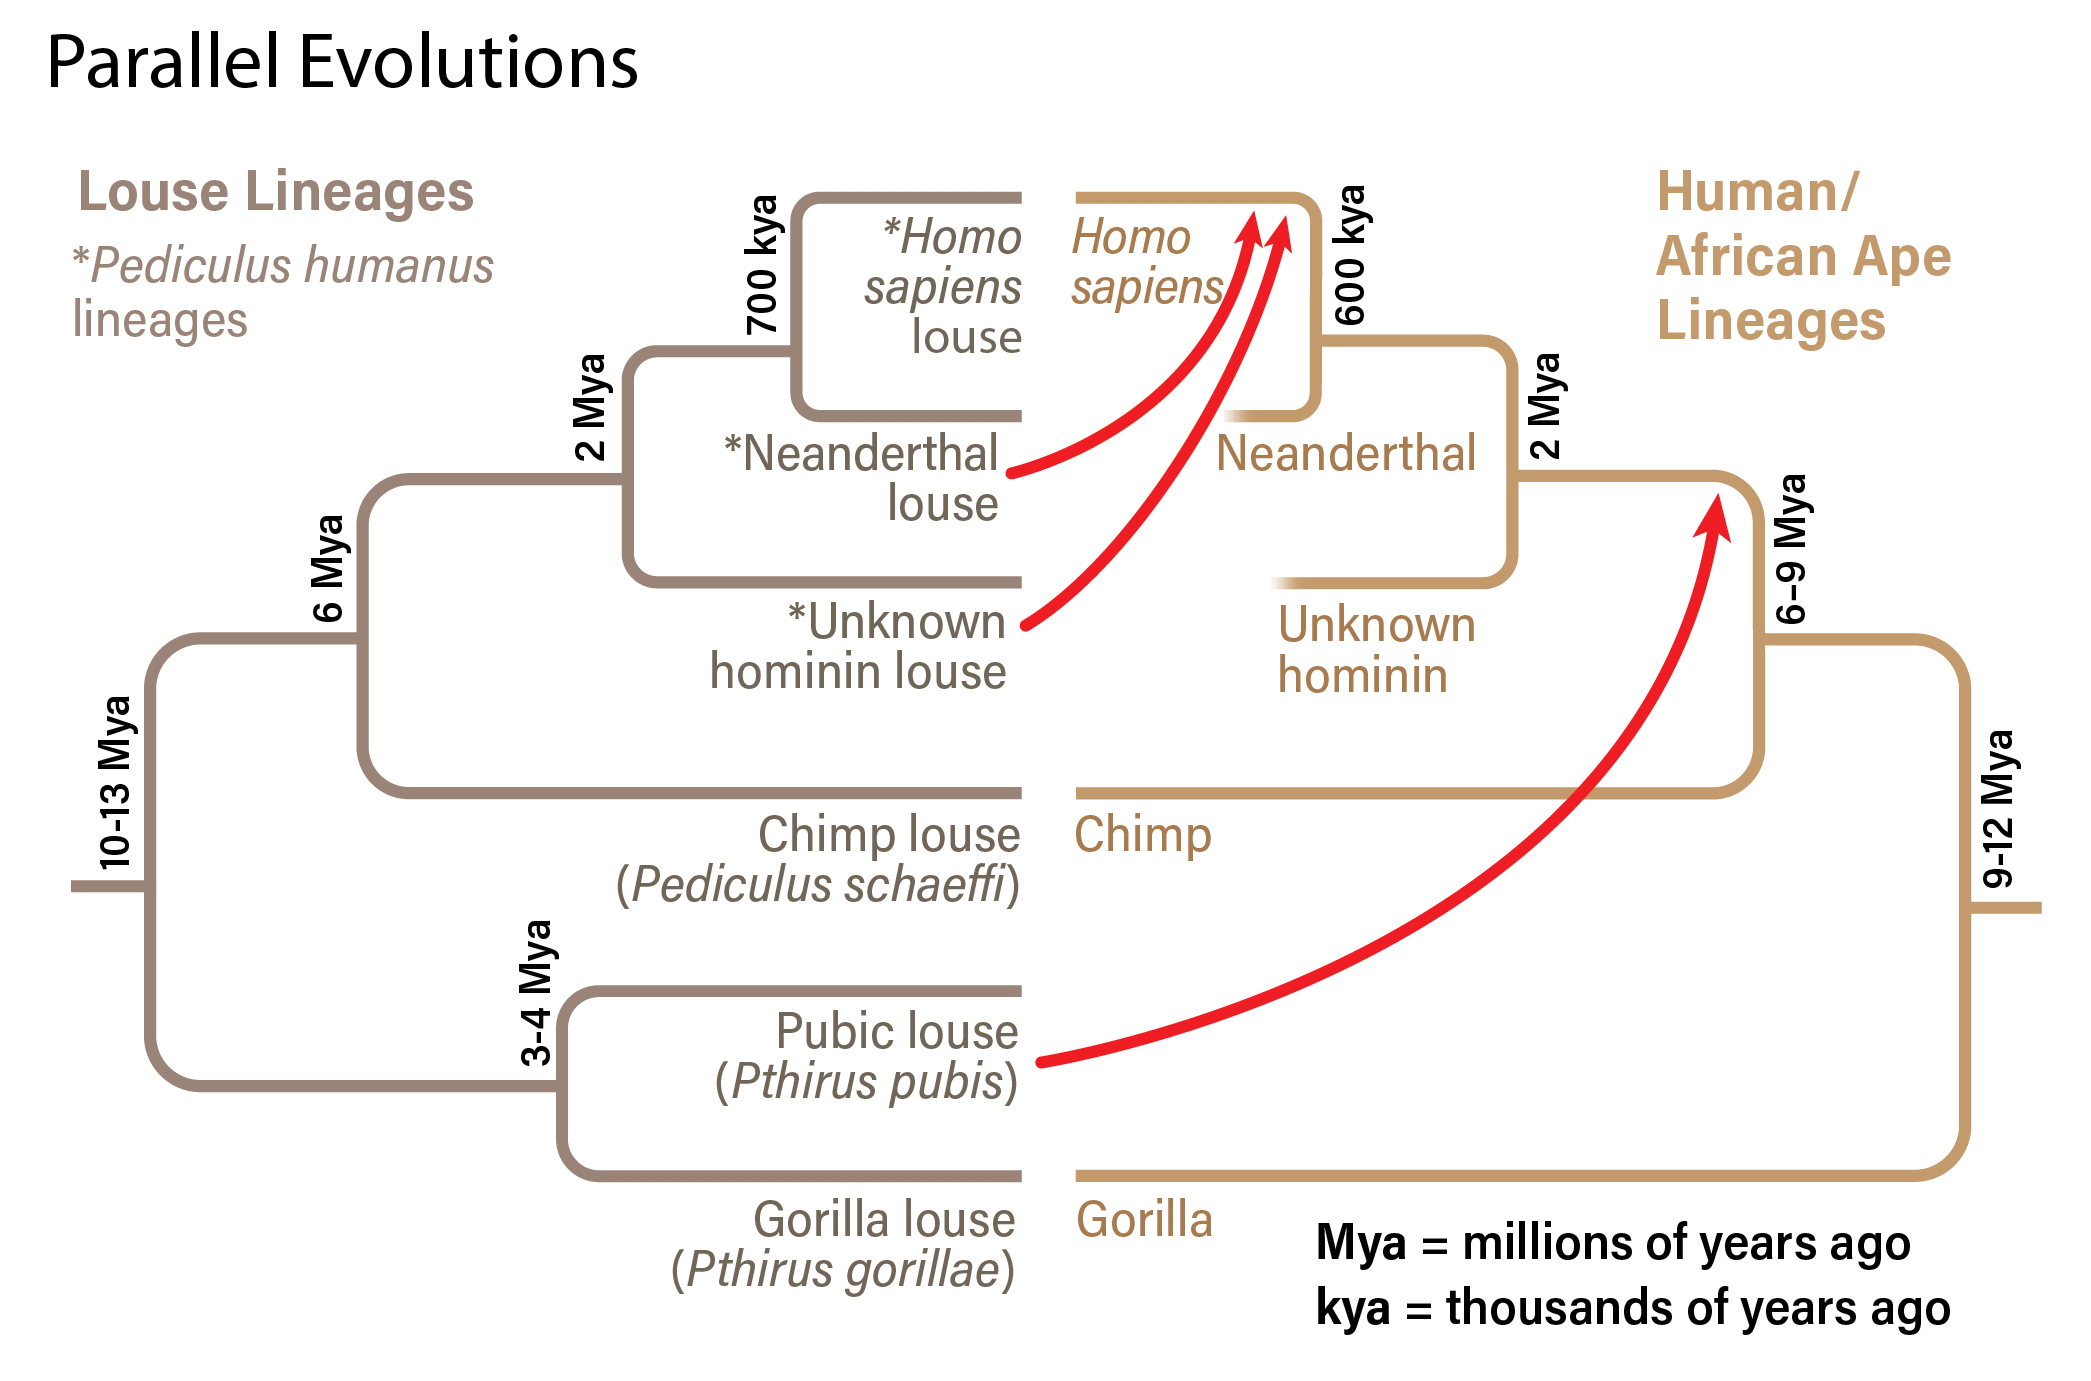 Parallel Evolution of Lice and Apes - Mackey/Discover